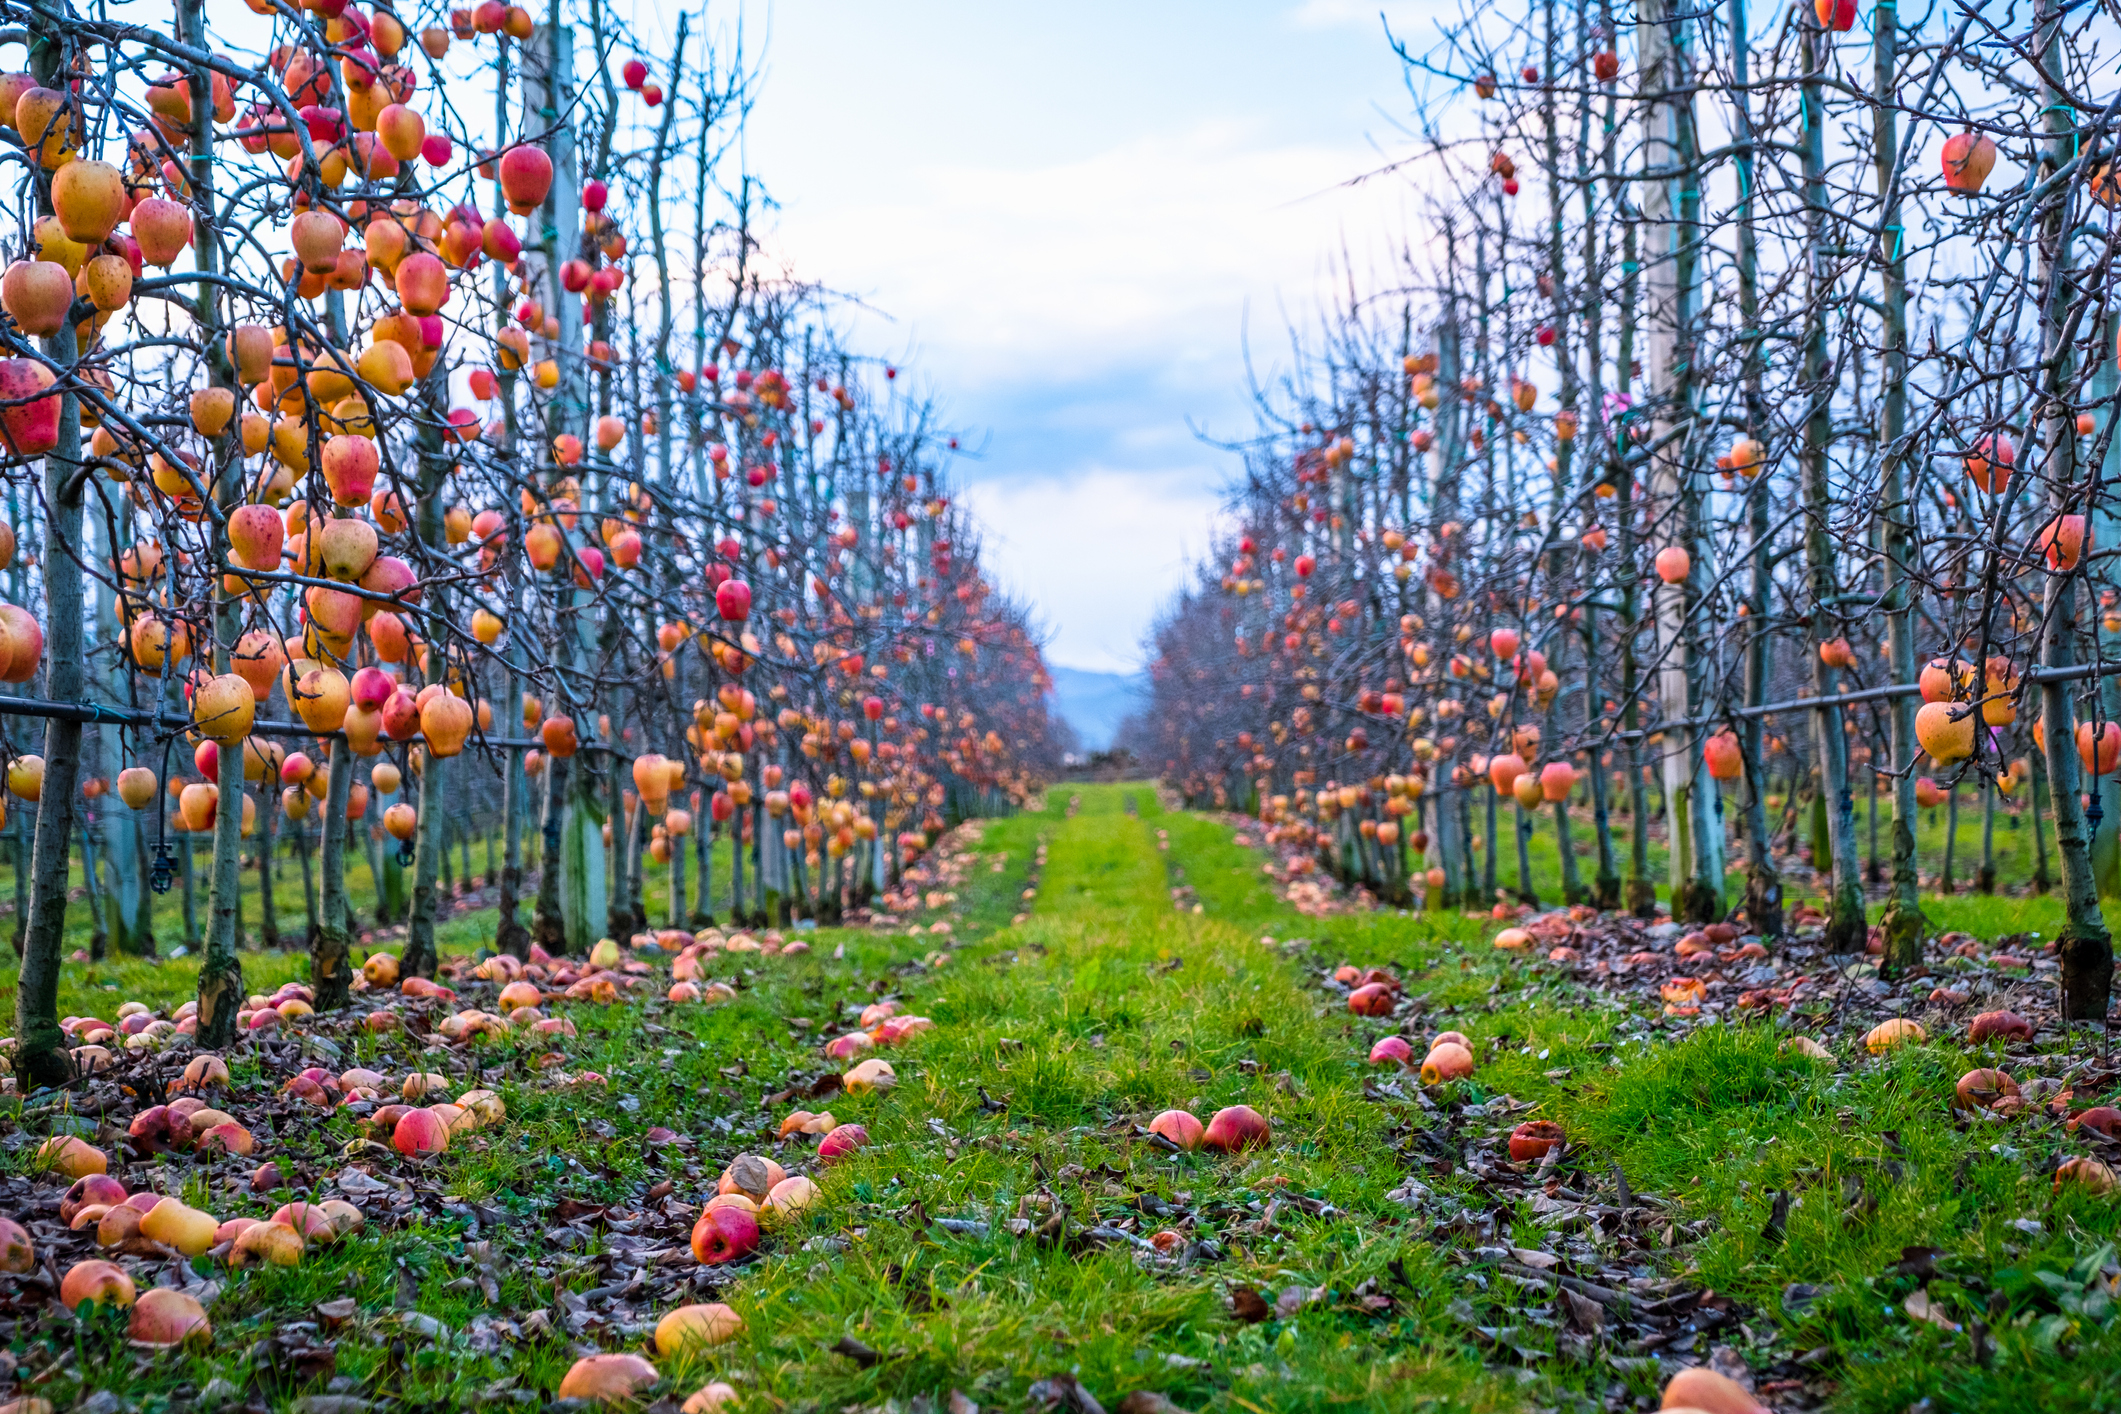 Orchard with apples on the ground showing a slipping hazard